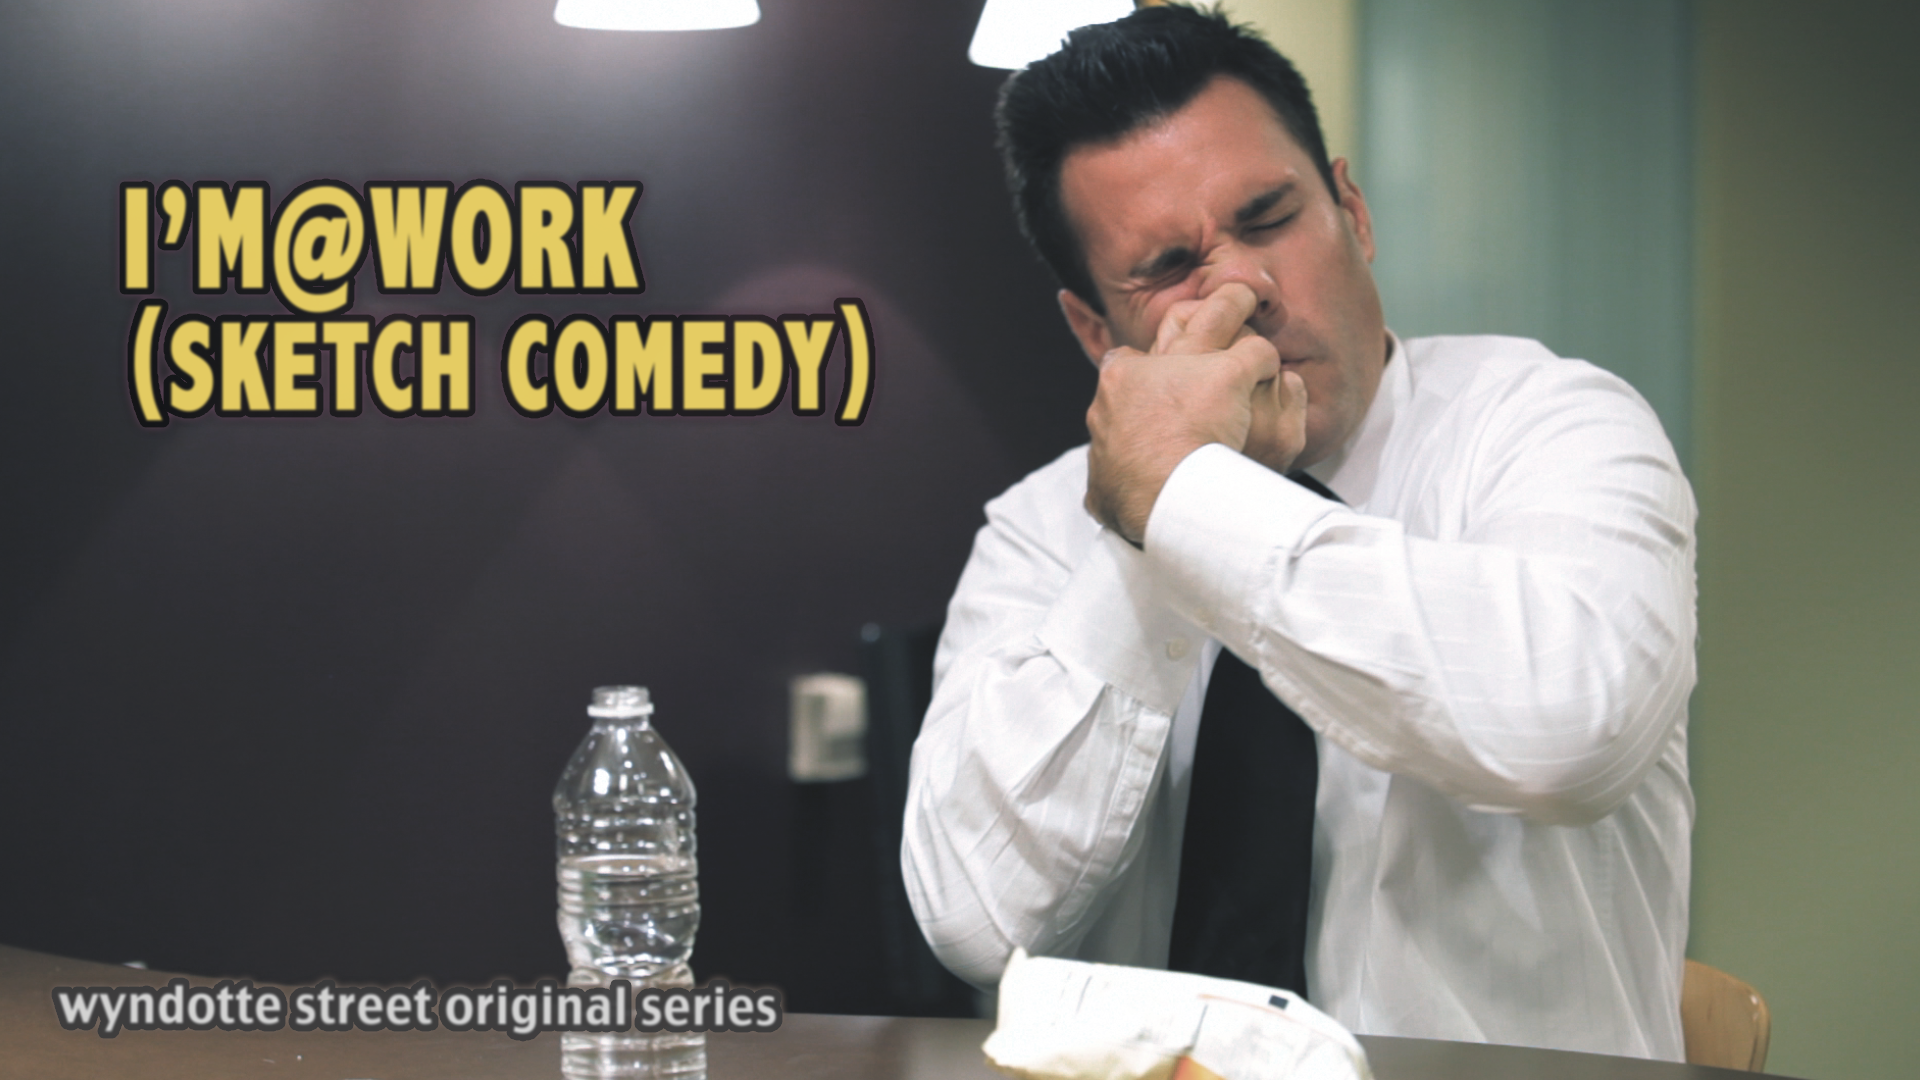 I'mAtWork Sketch Comedy